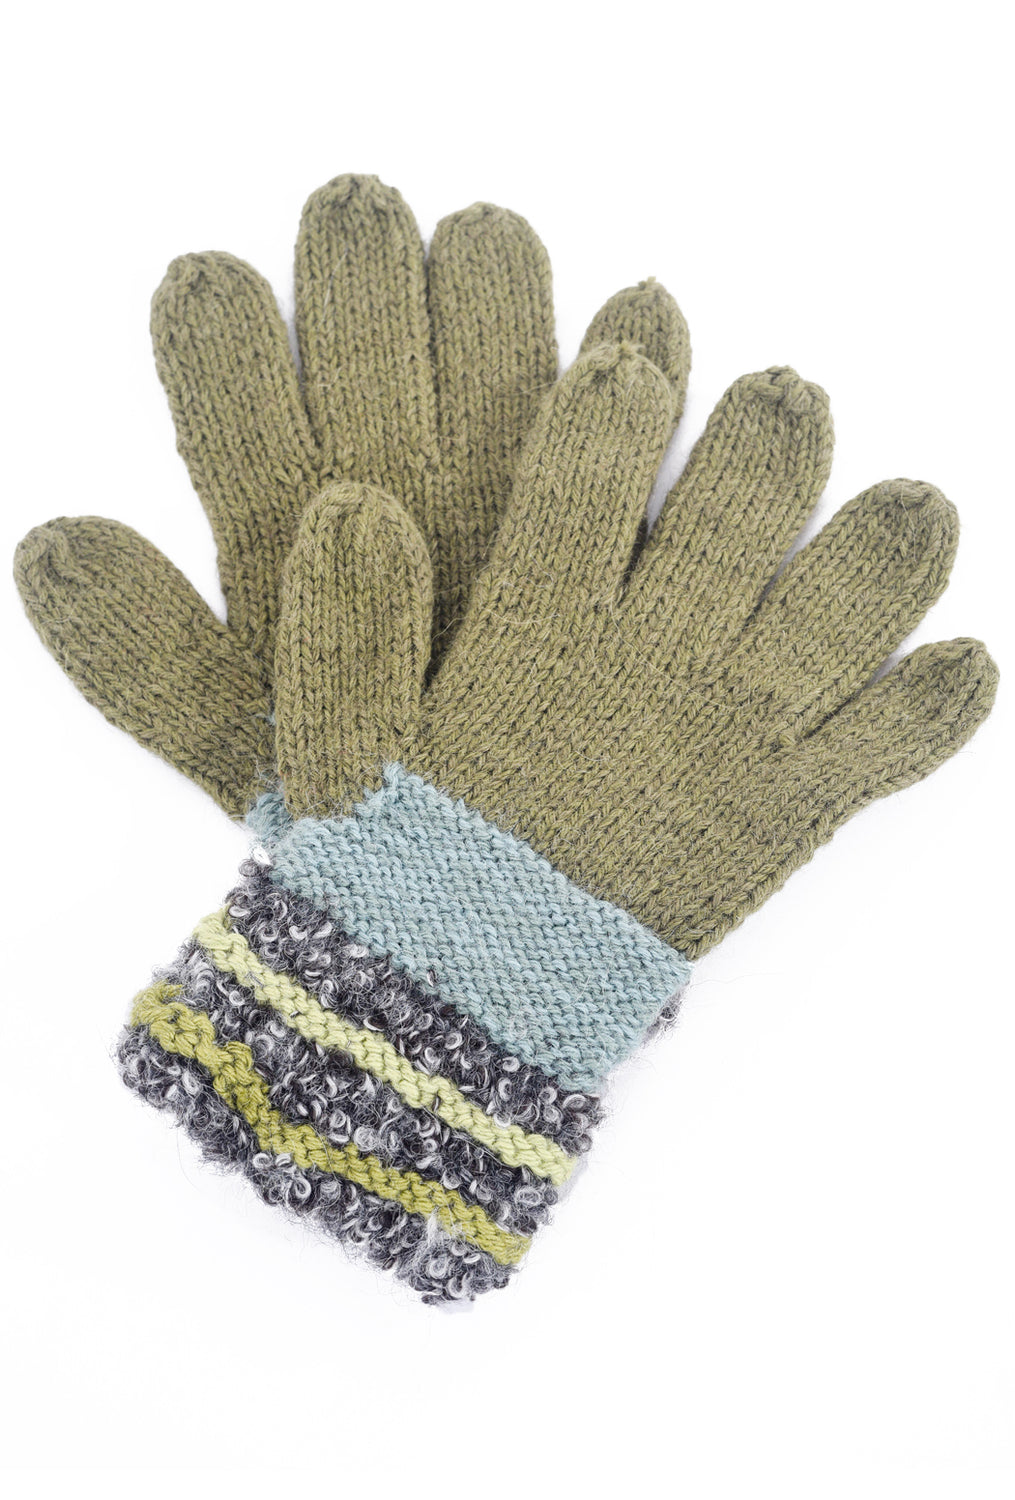 Little Journeys Little Journeys Gloves, Monet Gray One Size Gray